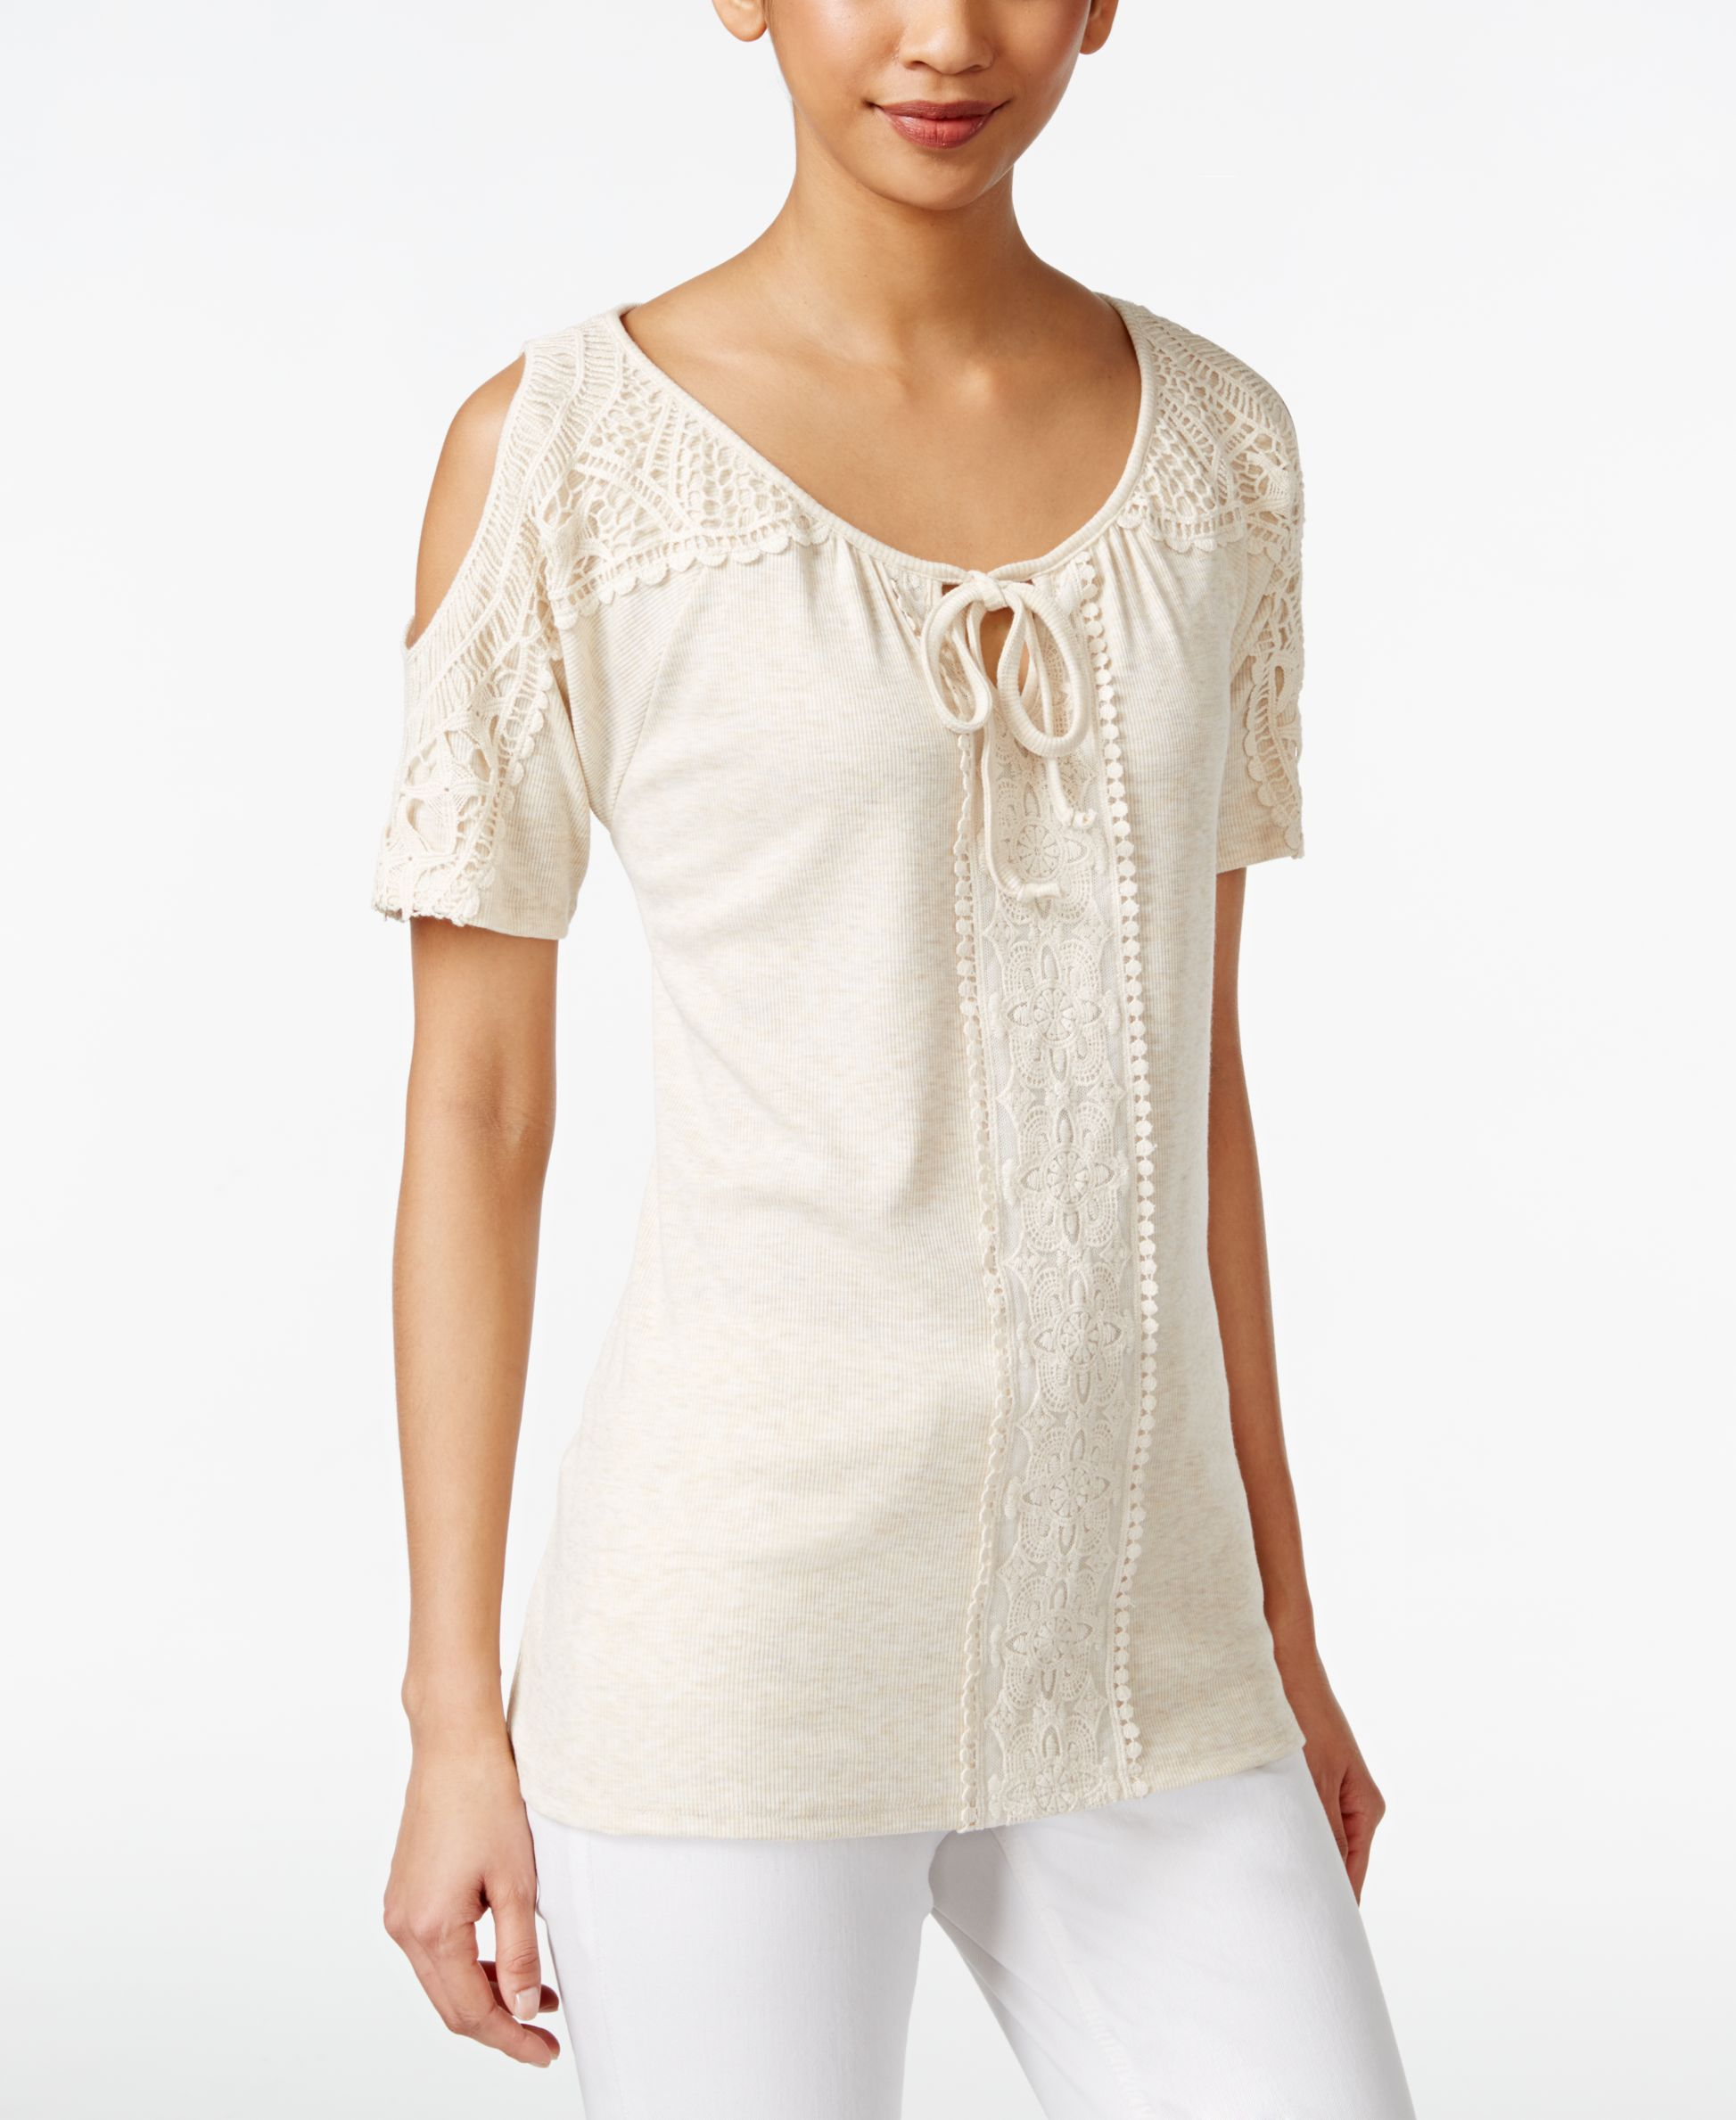 bbdab2f6facba3 Style   Co. Crochet Cold Shoulder Peasant Top